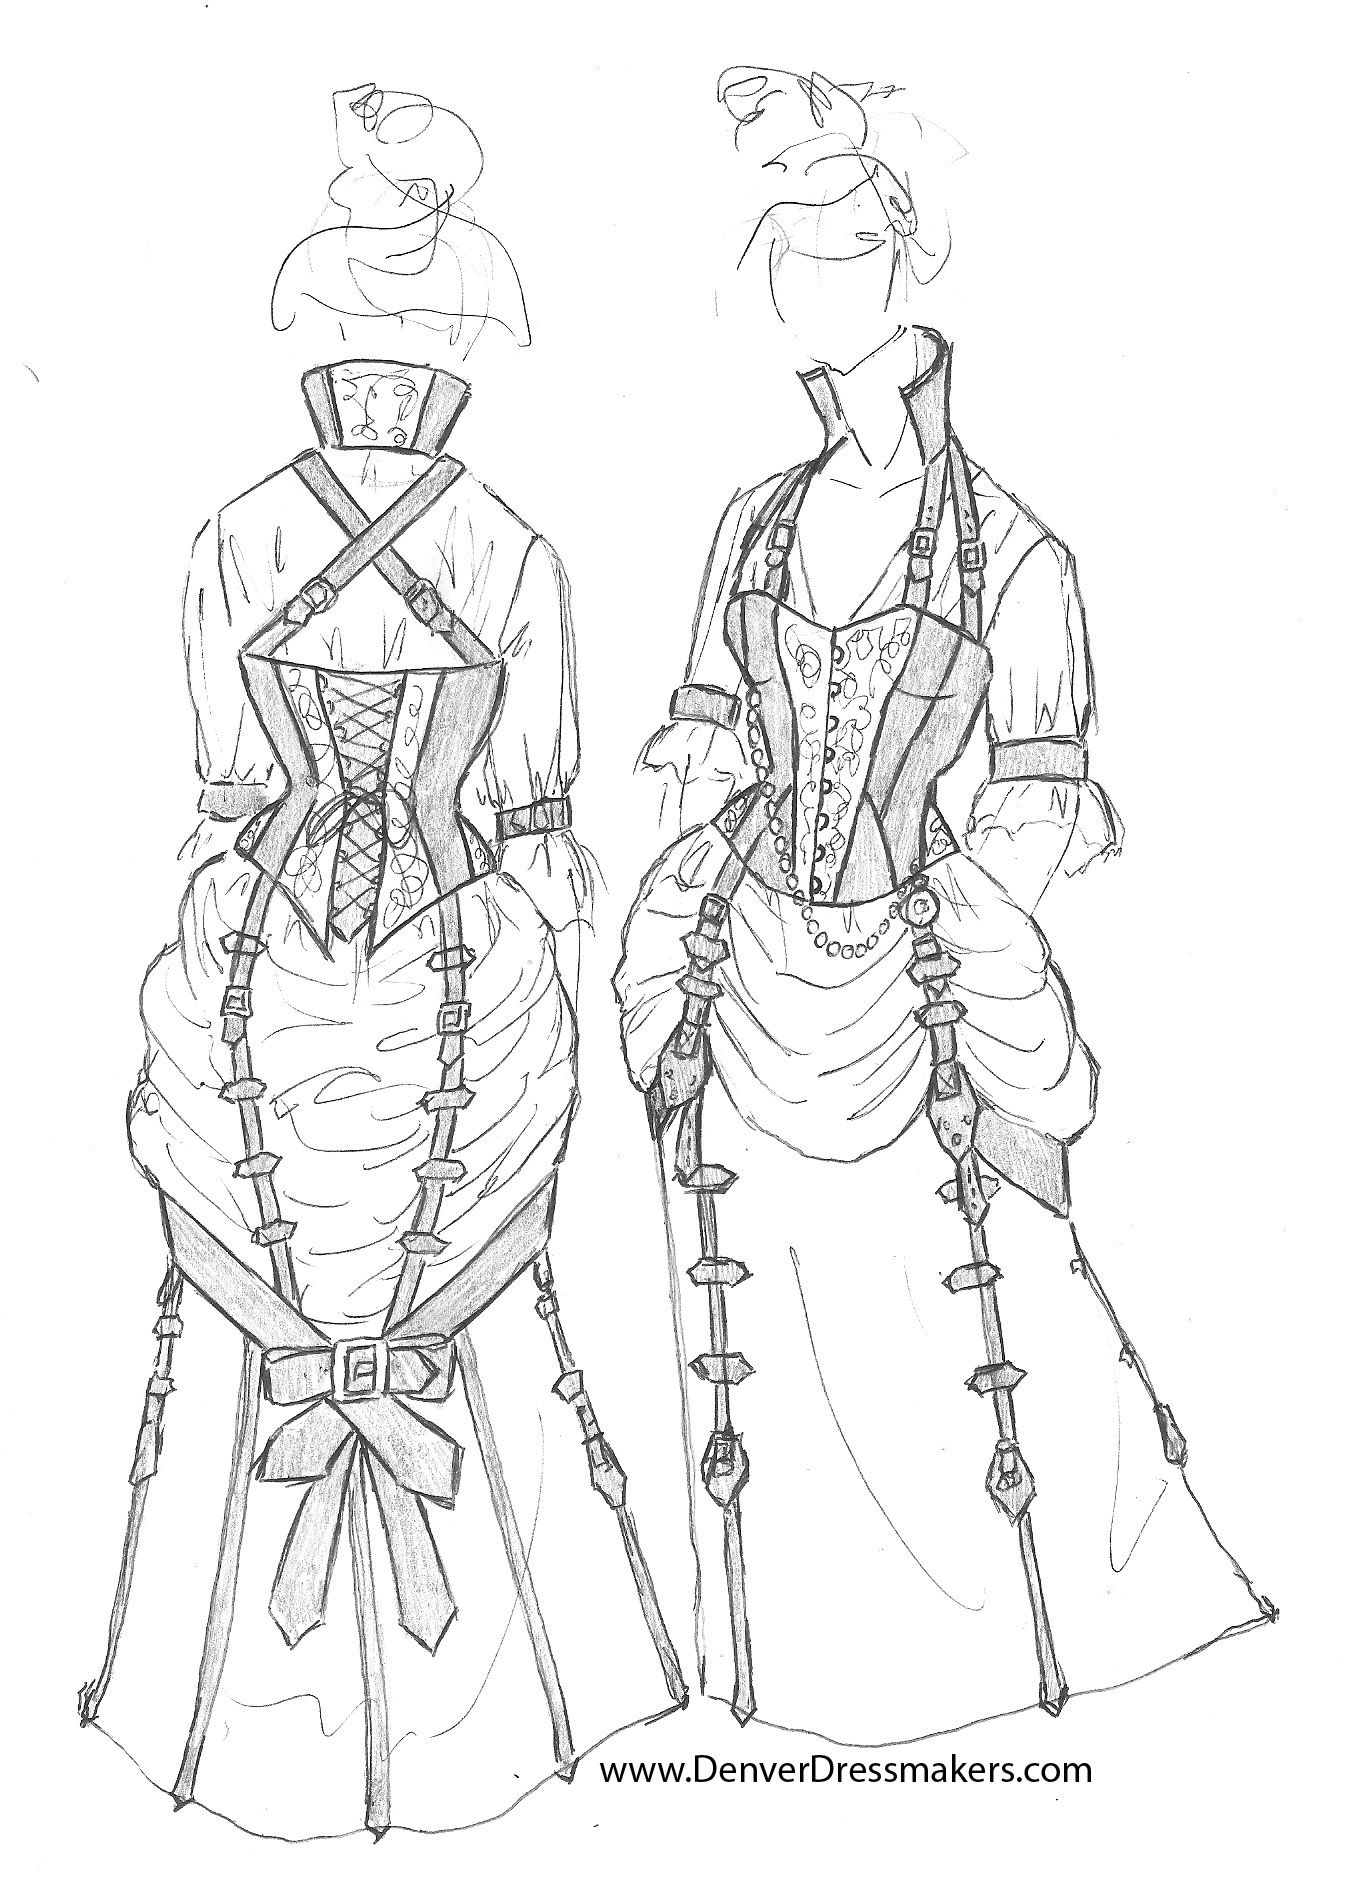 Denver Dressmakers Sketch For A Client Of A Steampunk Bustle